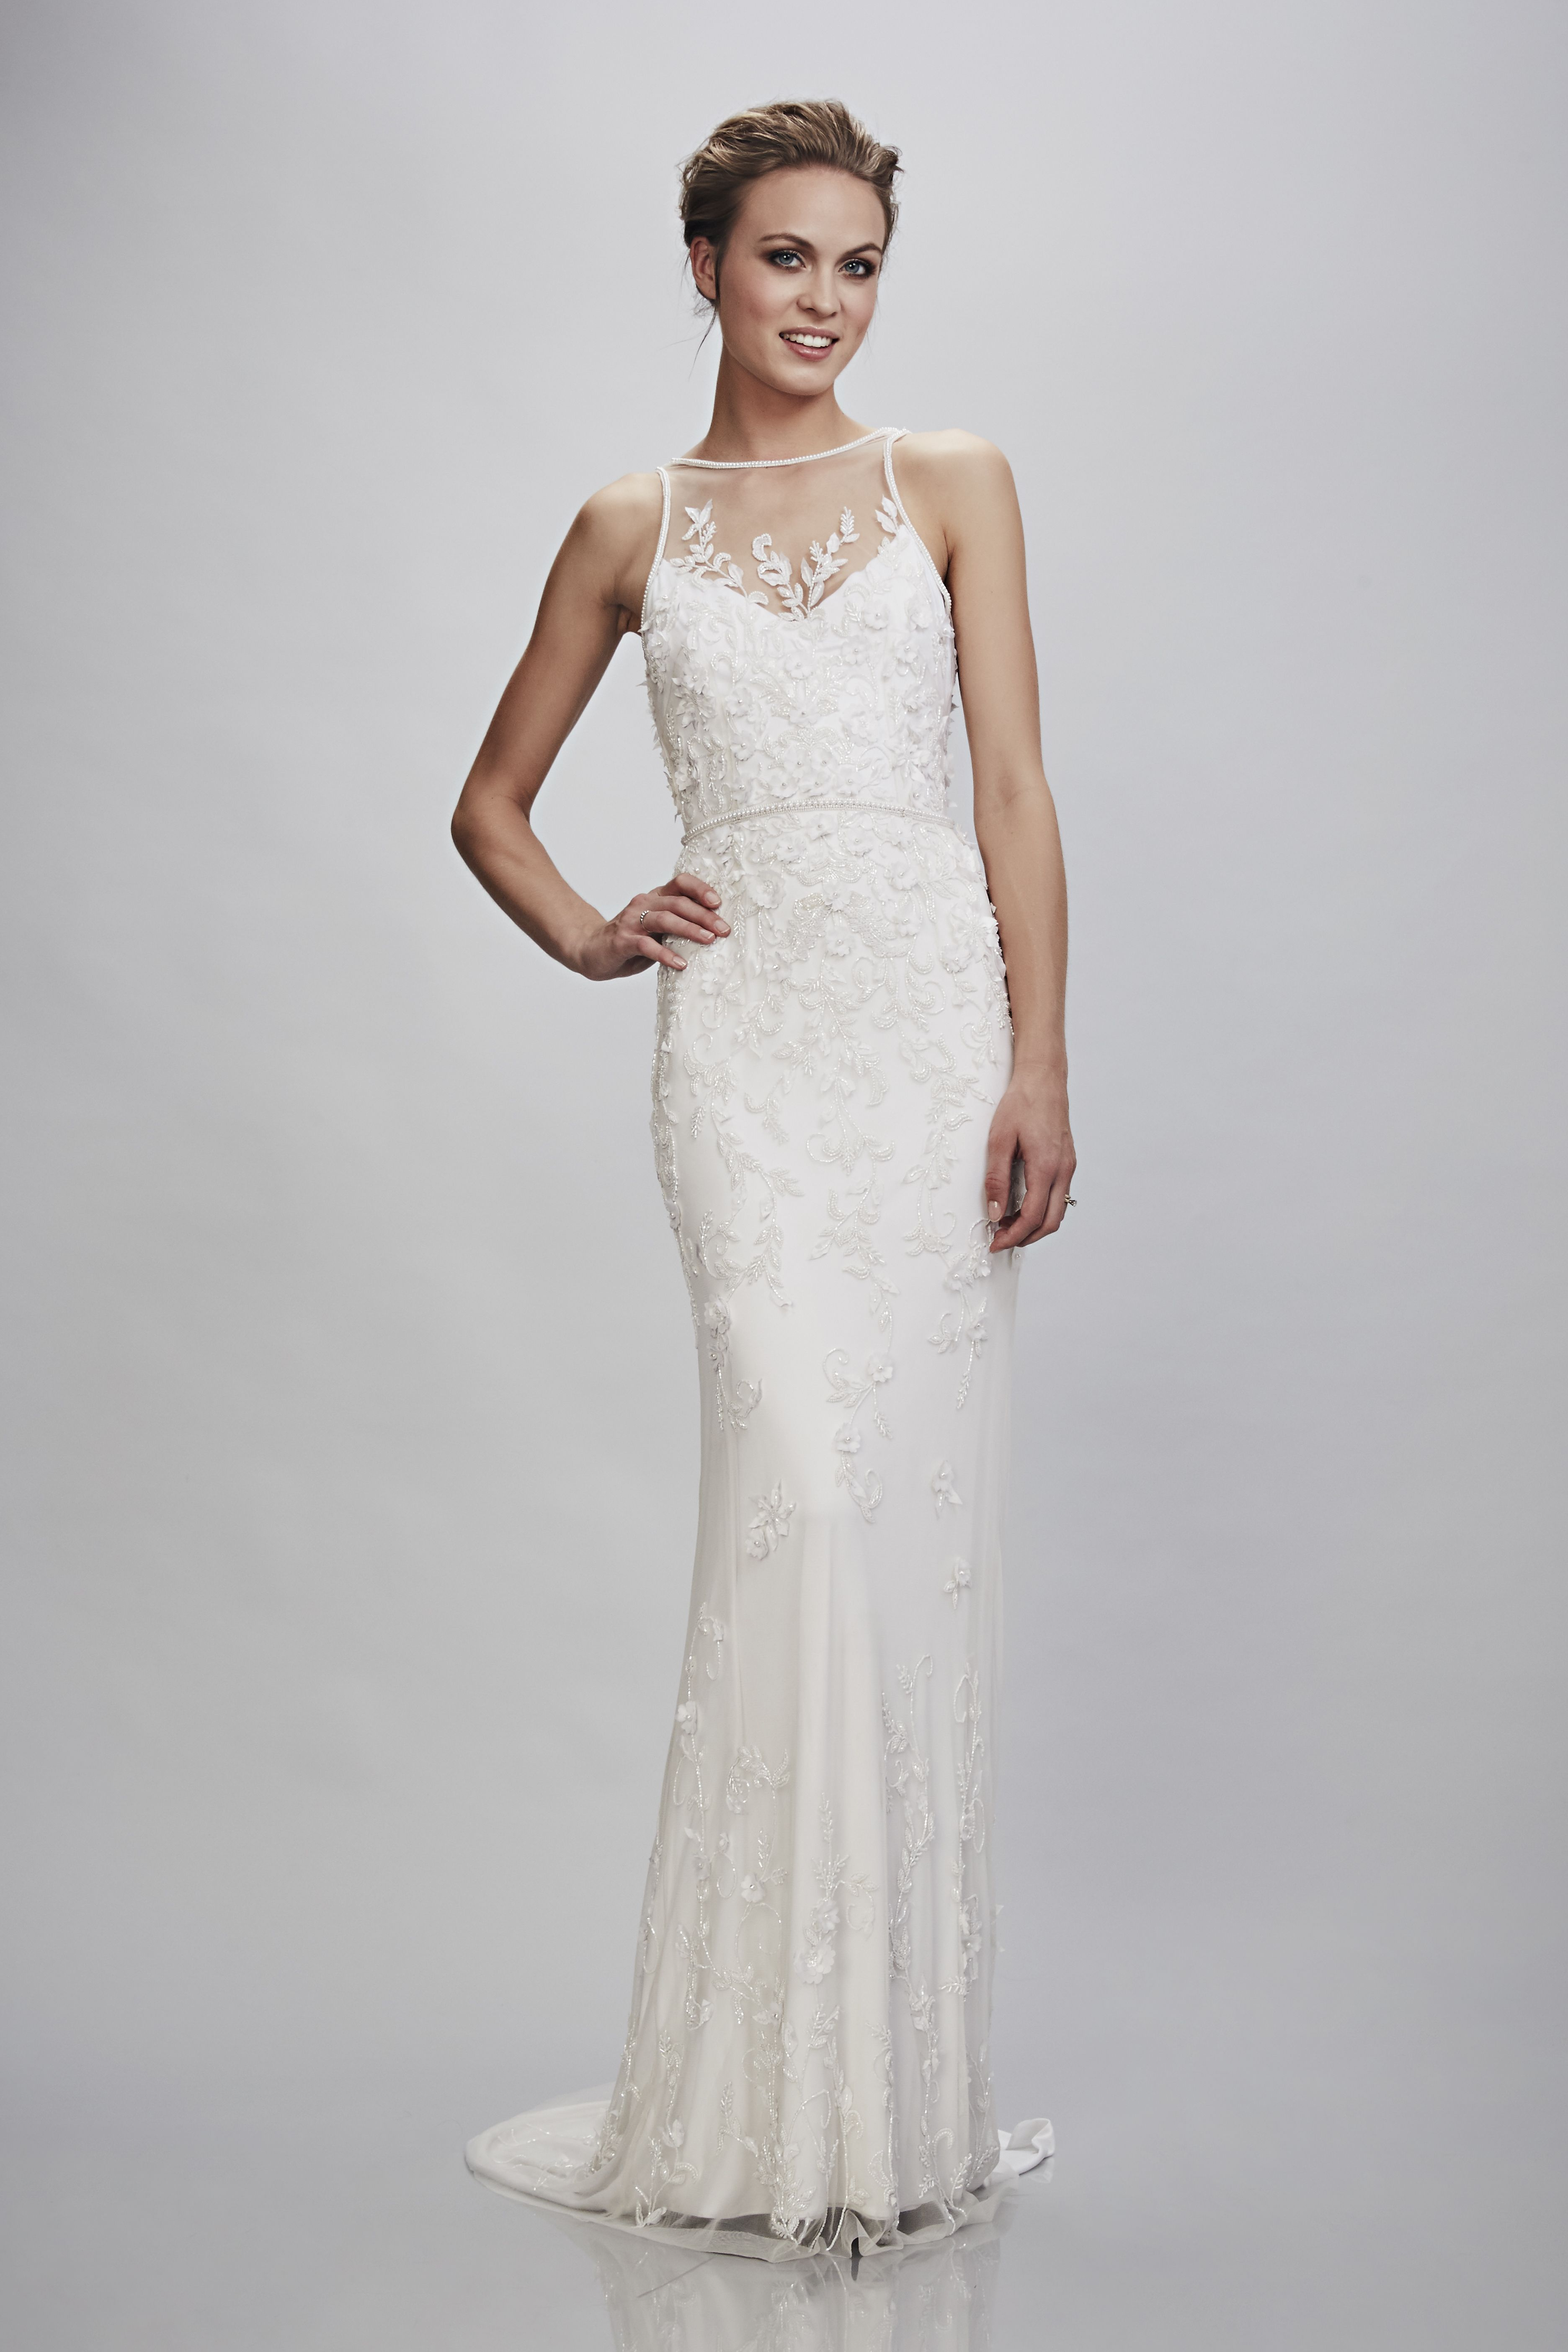 Rachele Bridal Gown Theia Bridal Available With Ivory Slip Or A Beautiful Sky Blue For The Bride Who Is A Theia Bridal Wedding Dress Couture Bridal Dresses